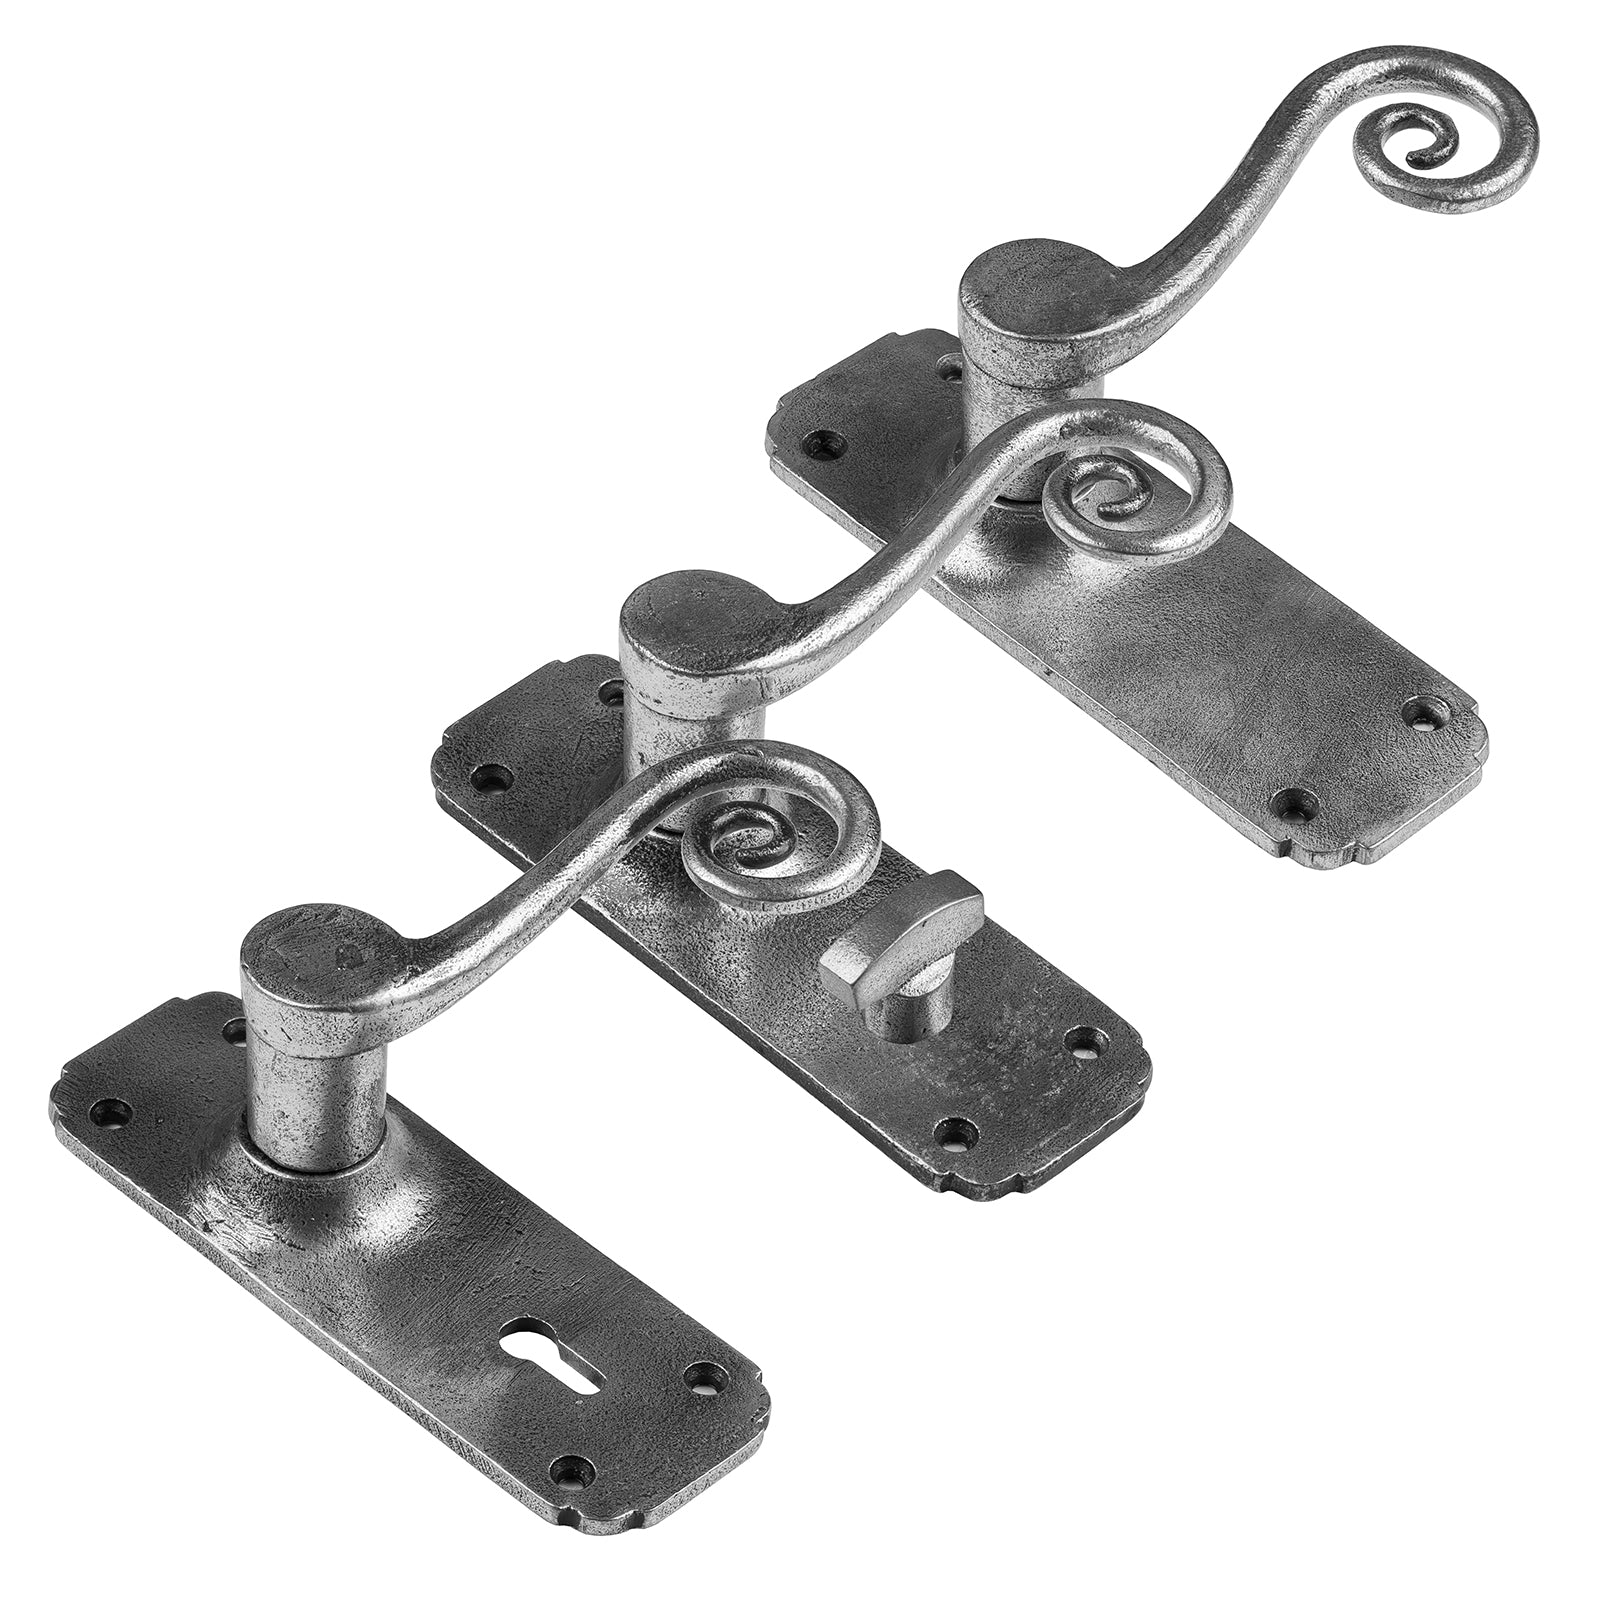 Monkey Tail Lever Handles in a pewter finish, pewter door knobs